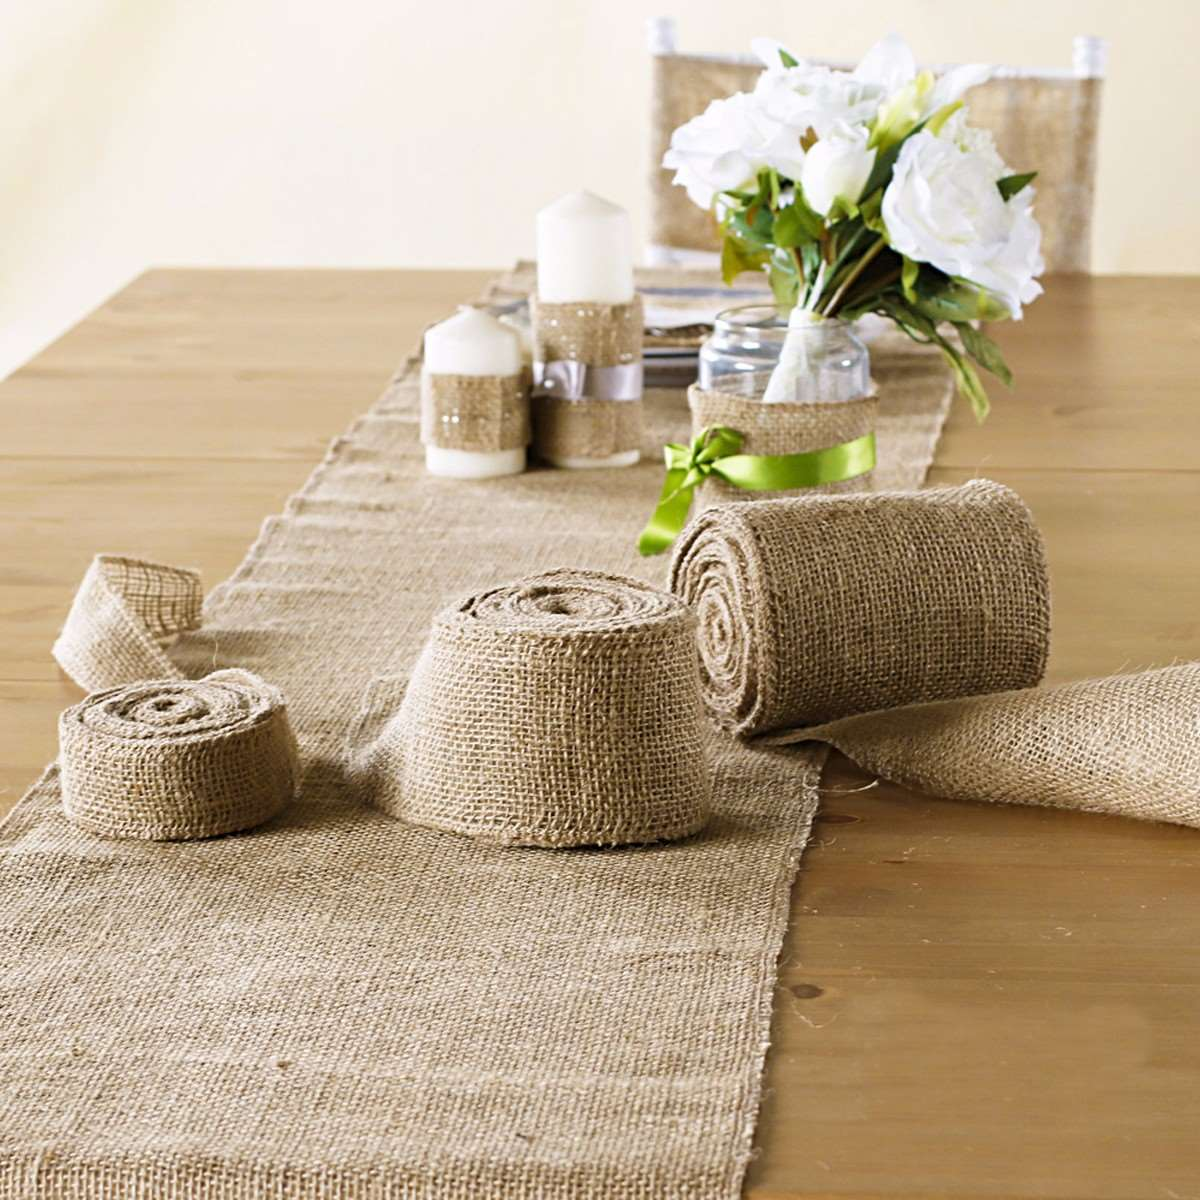 Rustic Hessian Table Runner Chair Cover 10X50cm Hessian Vintage Burlap Jute Shabby Chic Rustic Wedding Decor